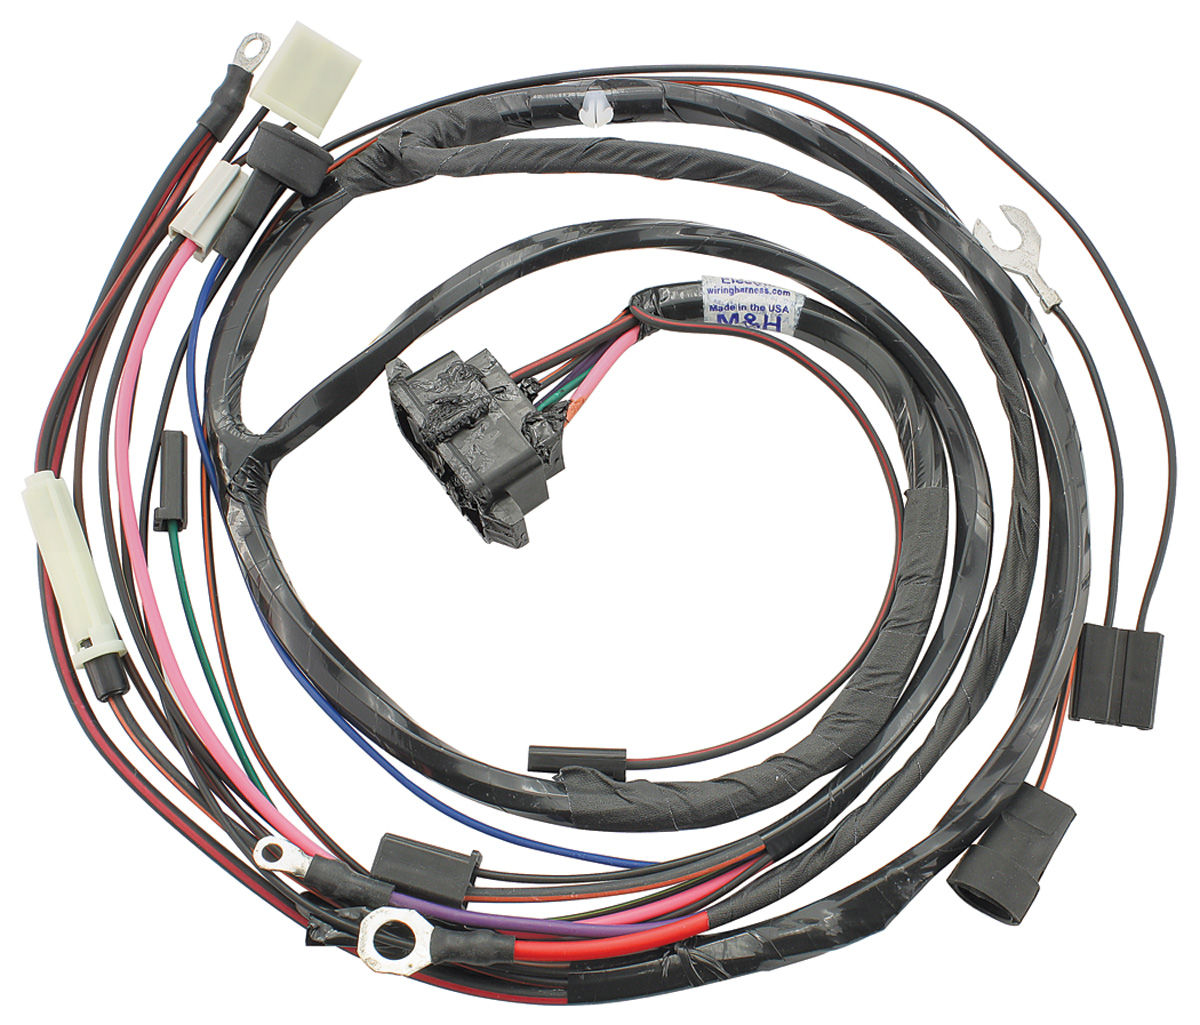 medium resolution of 1967 gto engine harness for hei ignition v8 w ac si series int